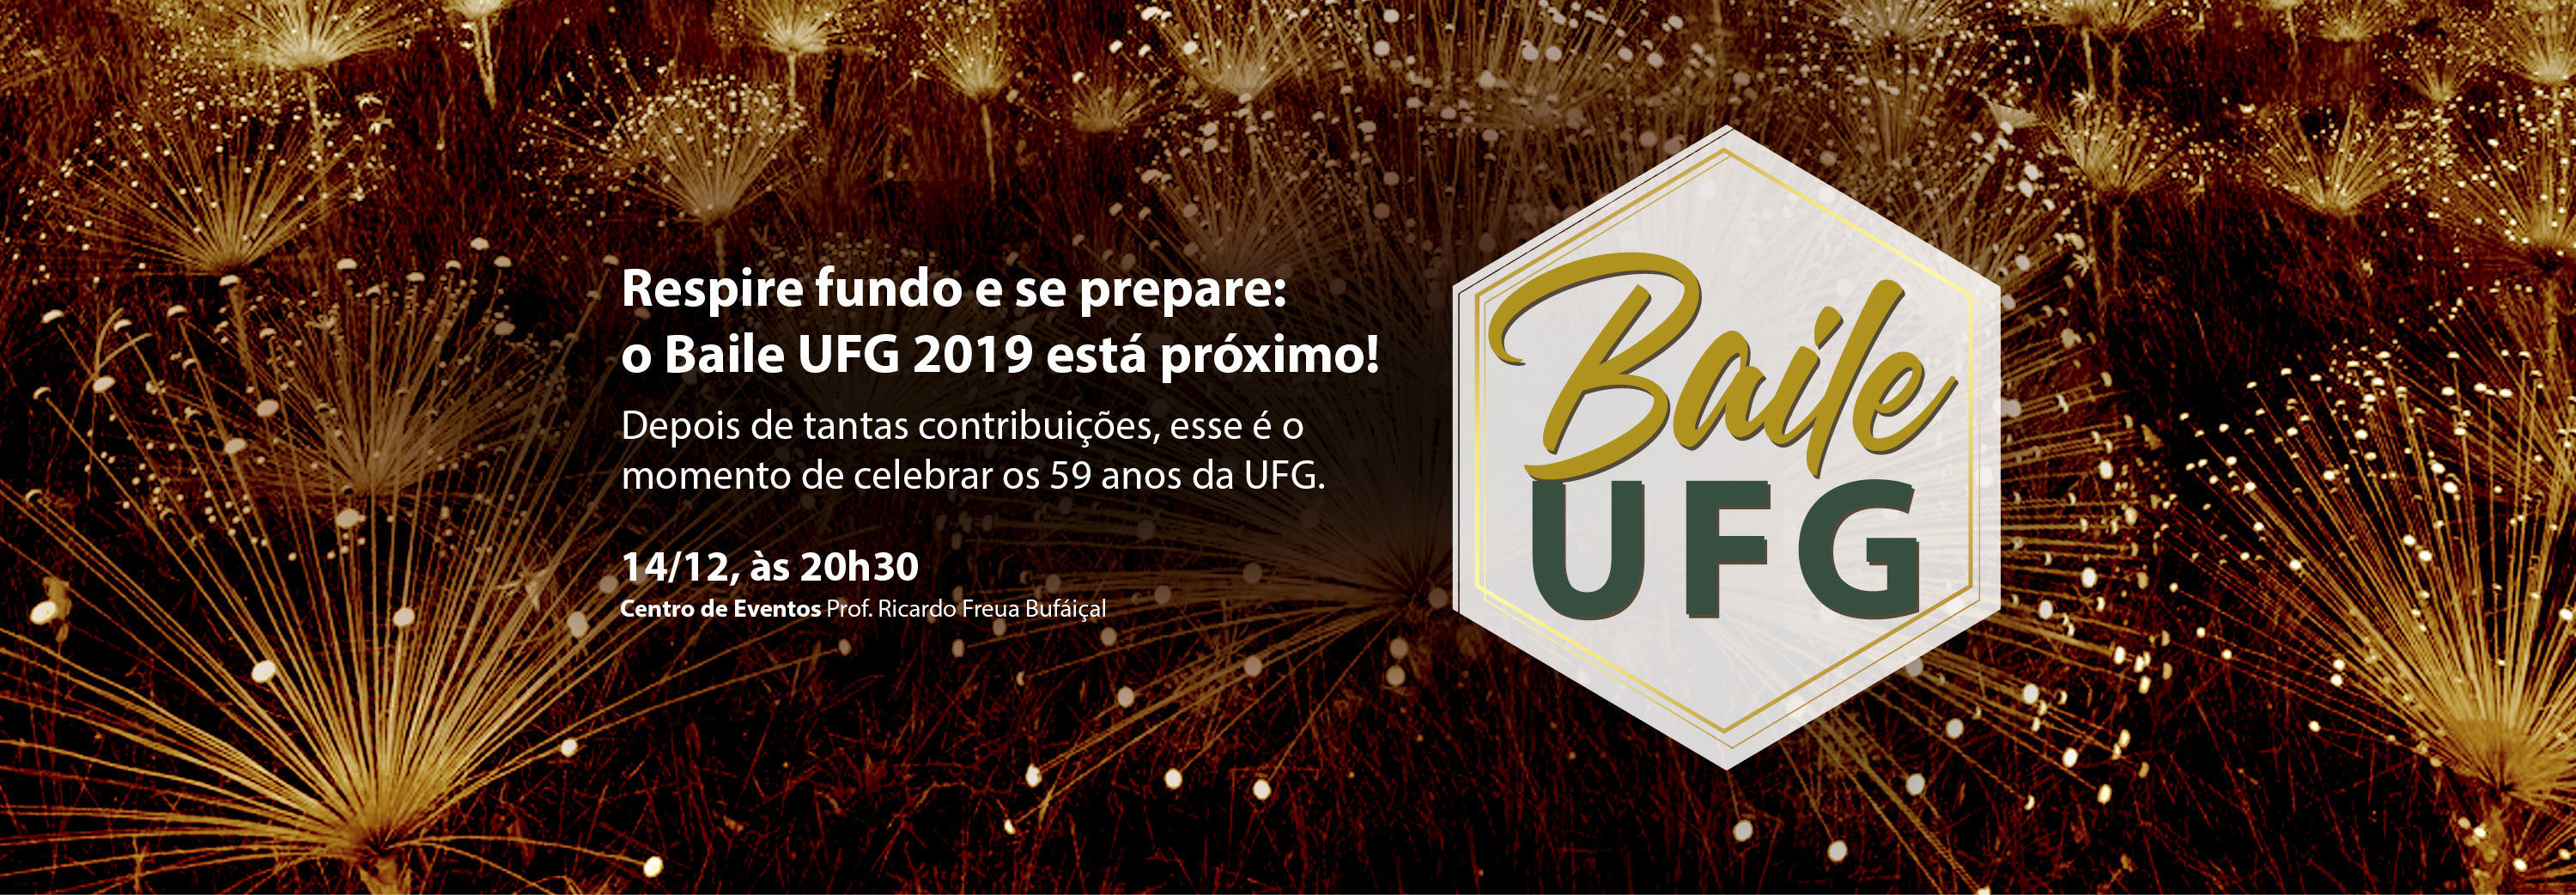 banner site- baile